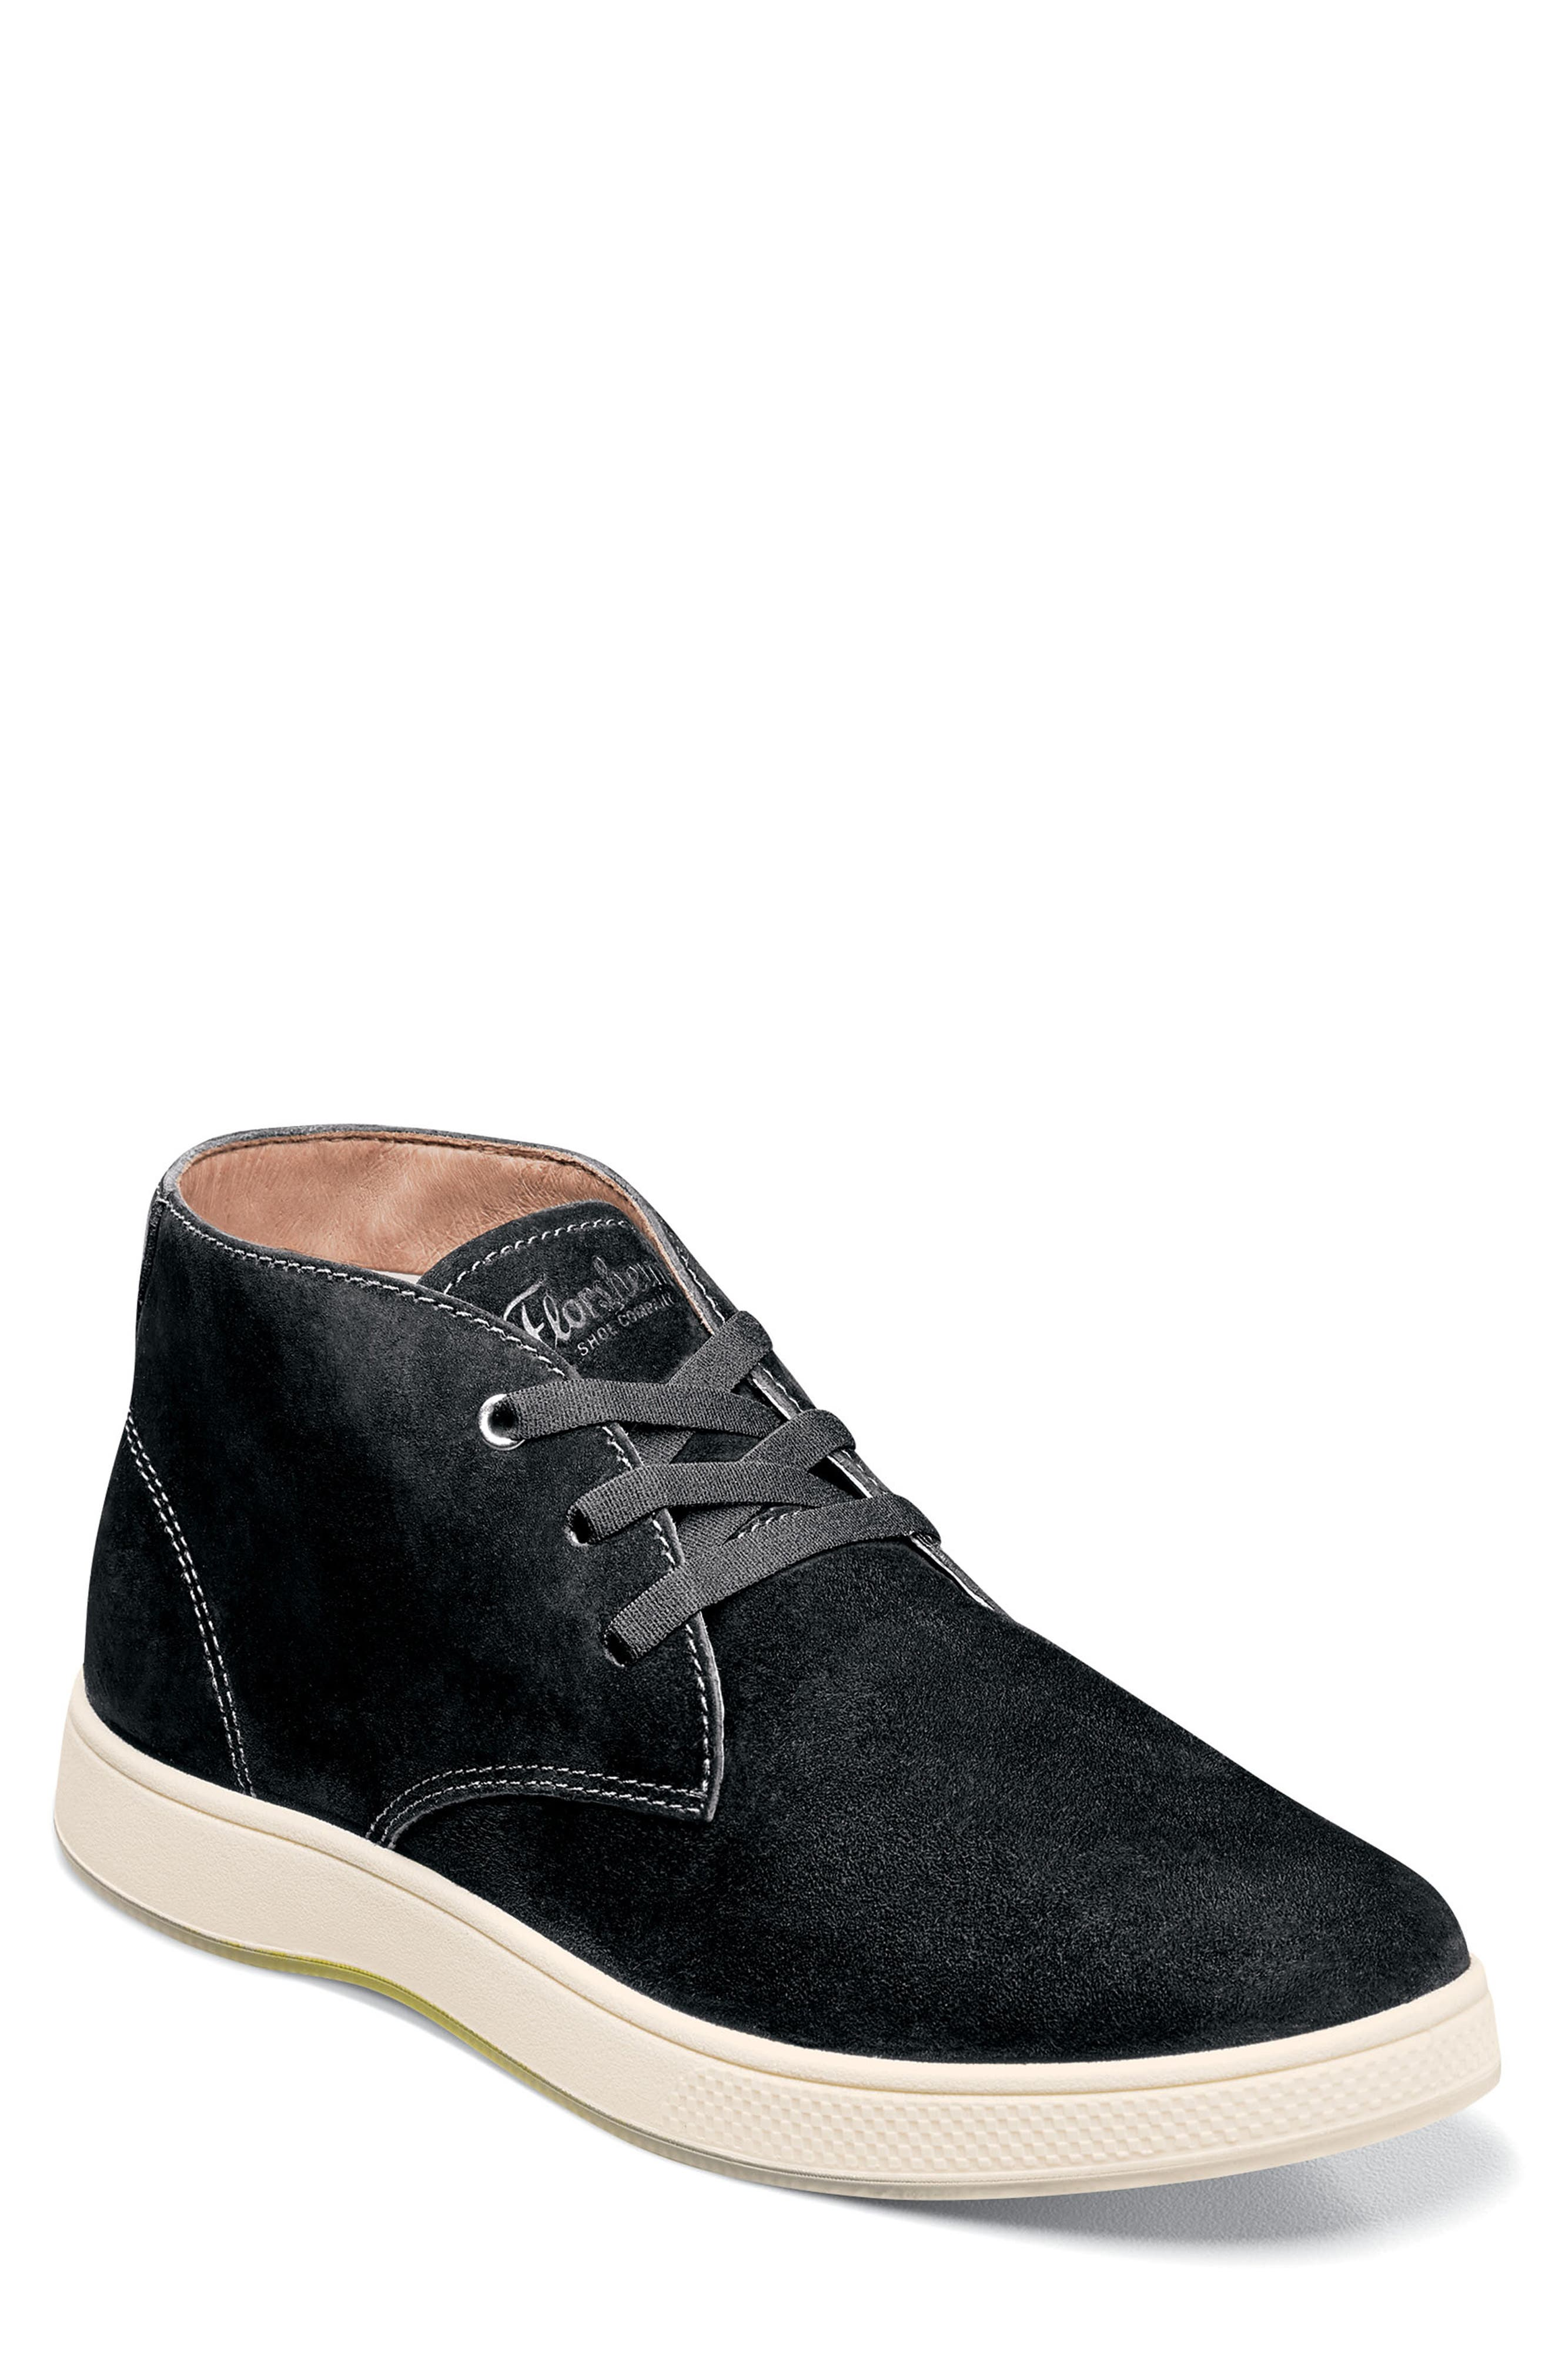 FLORSHEIM Edge Chukka Boot in Black Nubuck Leather